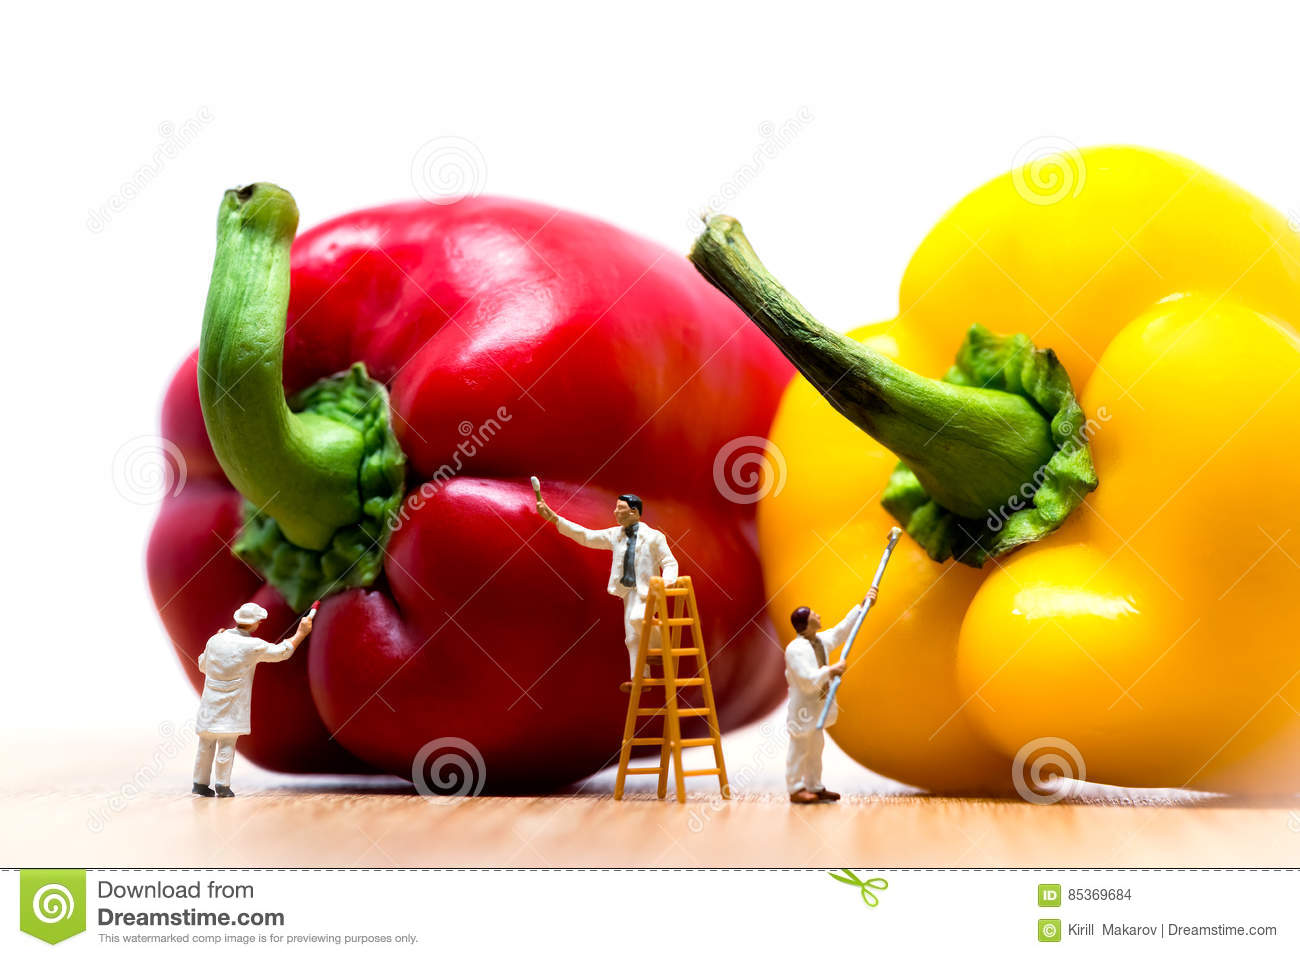 Painters coloring bell pepper. Macro photo